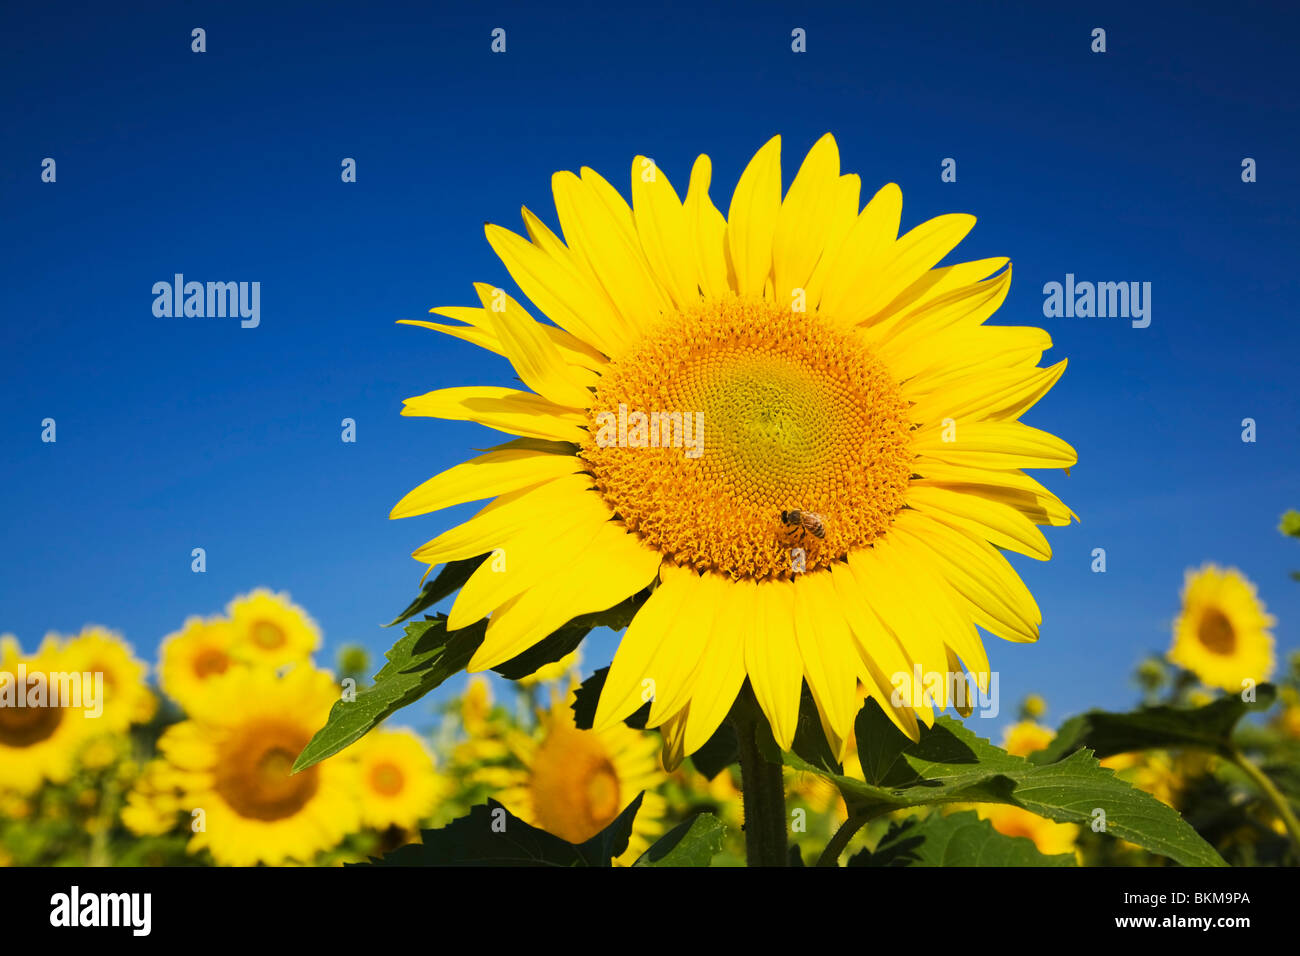 Laval, Quebec, Canada; A Sunflower With A Honeybee Foraging For Nectar - Stock Image